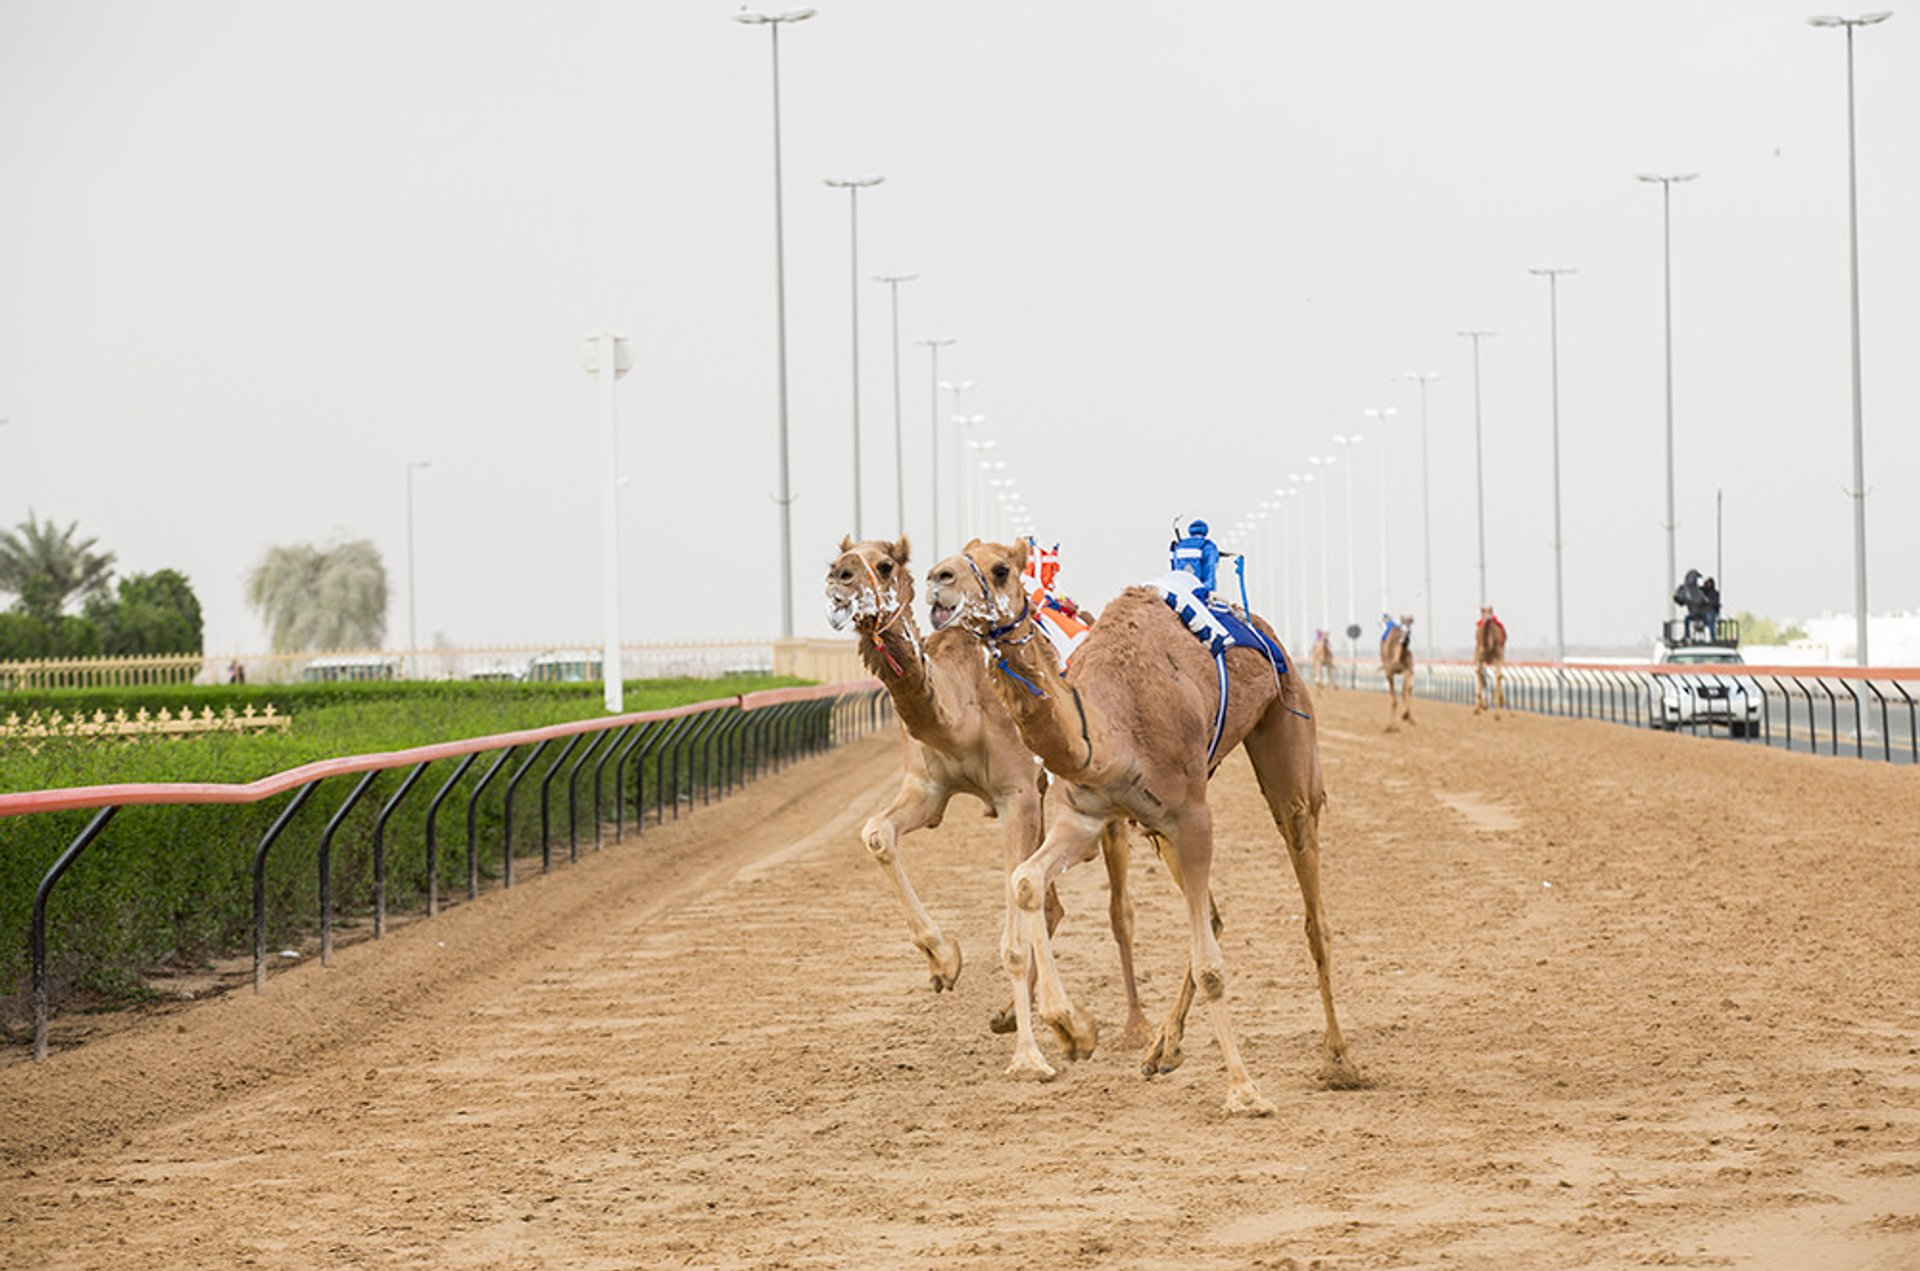 Best time for Camel Racing Season in Dubai 2019